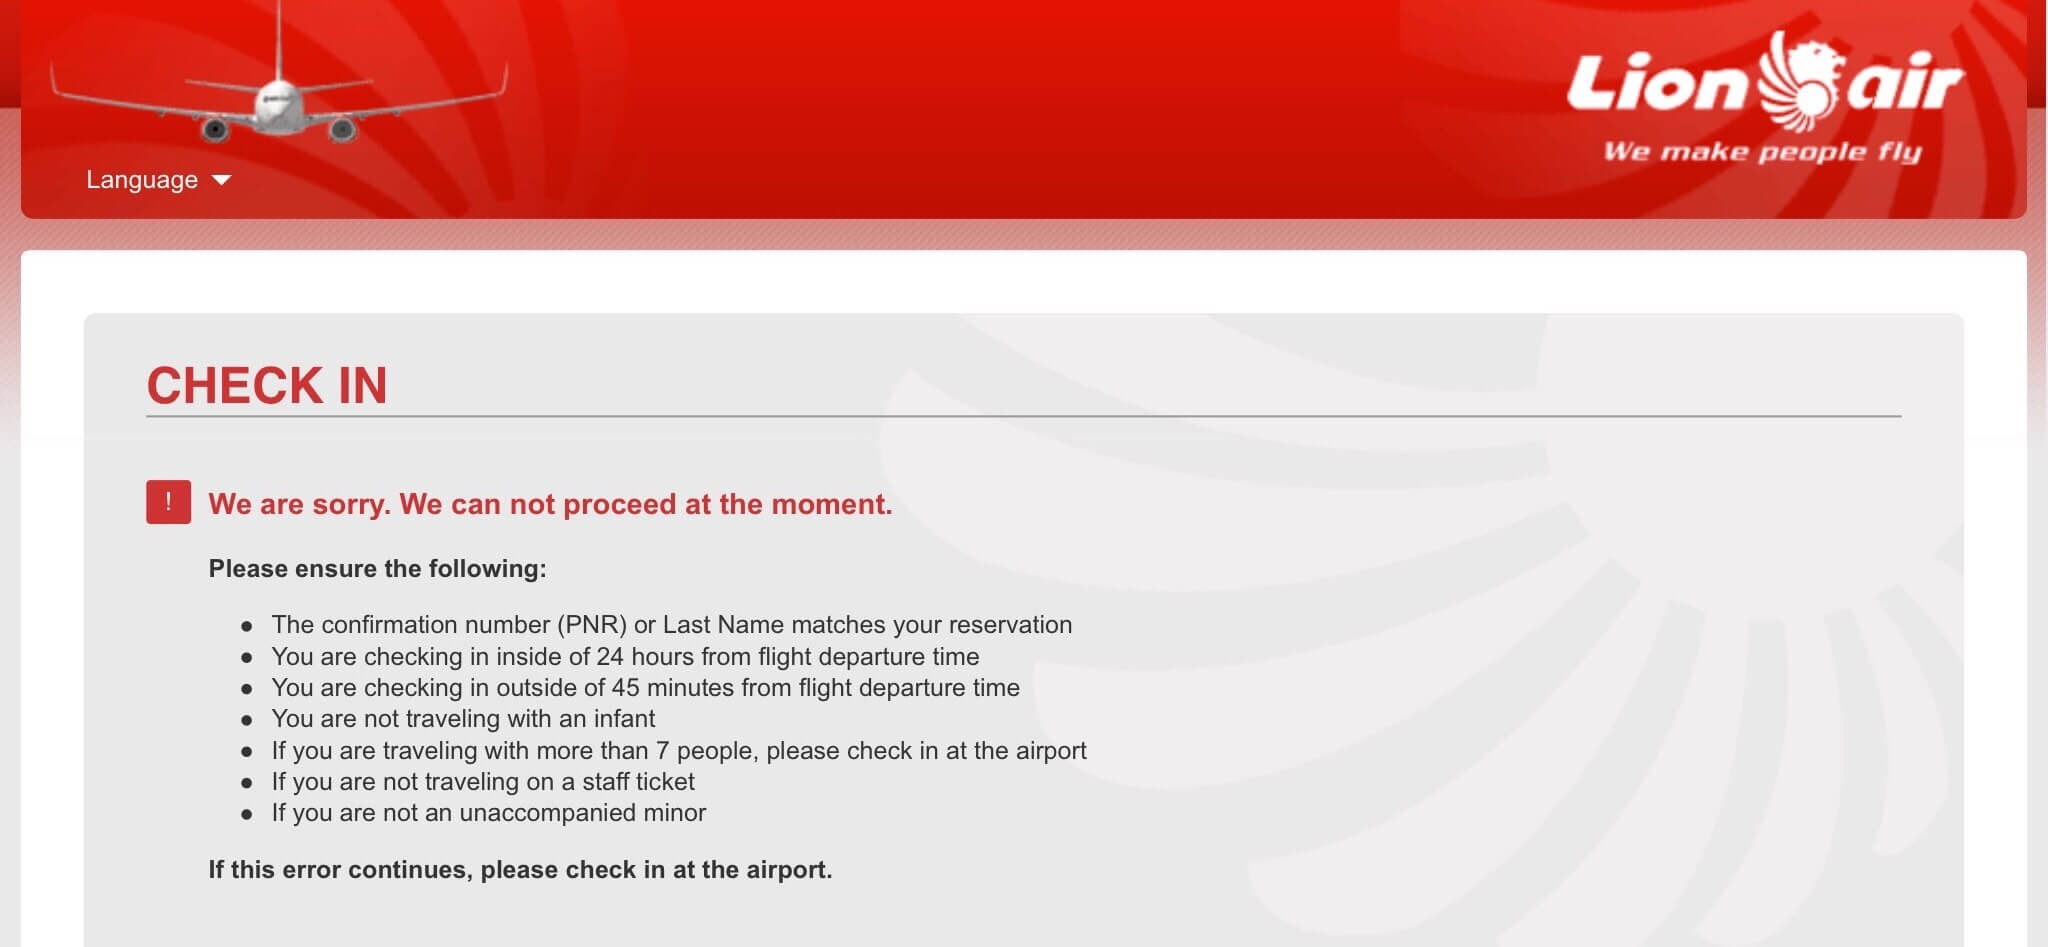 Image Gallery: Lion air web check in